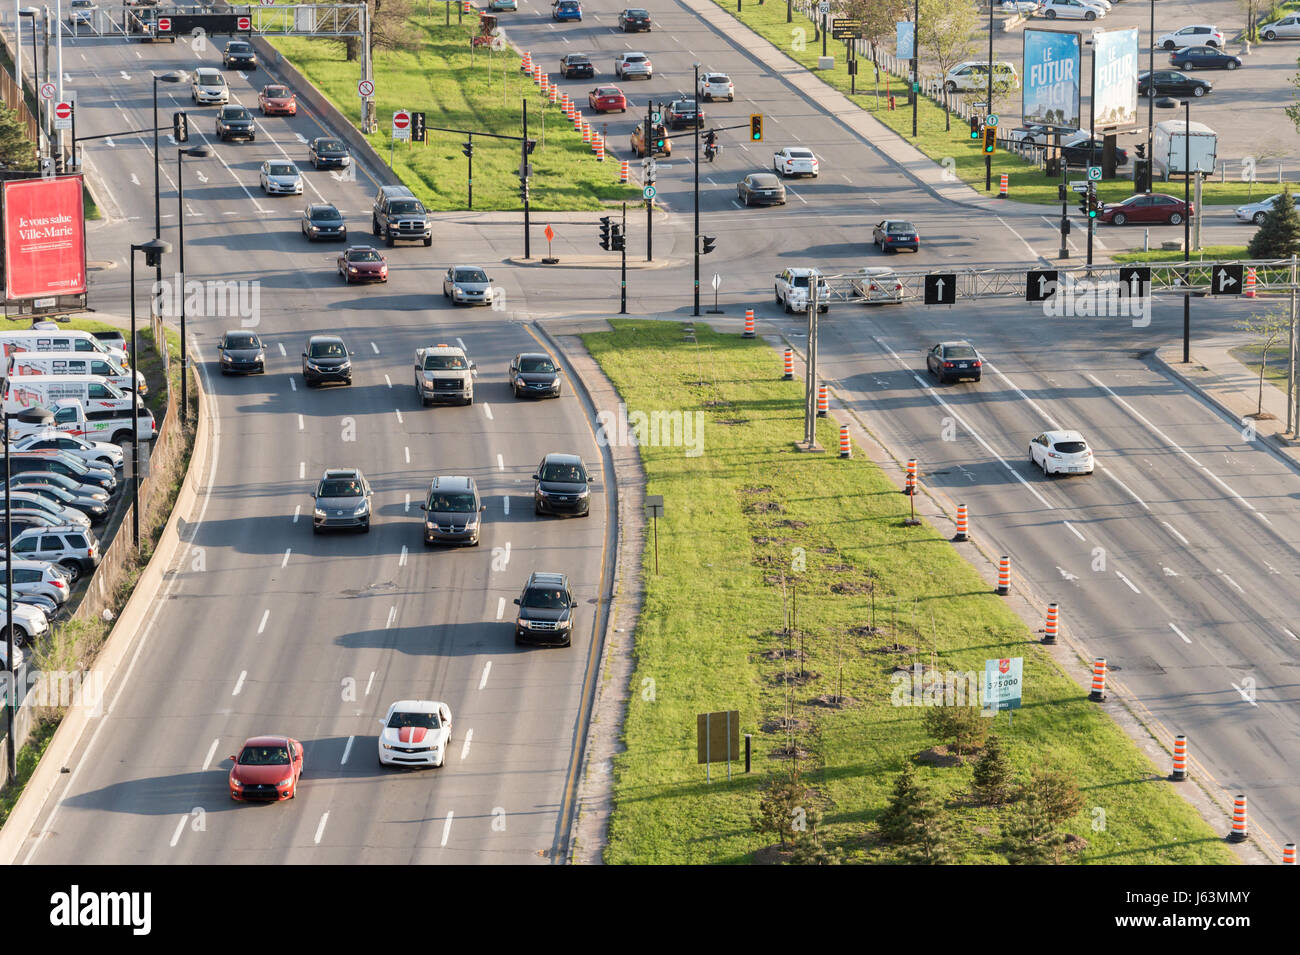 Montreal, CA - 18 May 2017: Heavy traffic moves on Viger Avenue - Stock Image